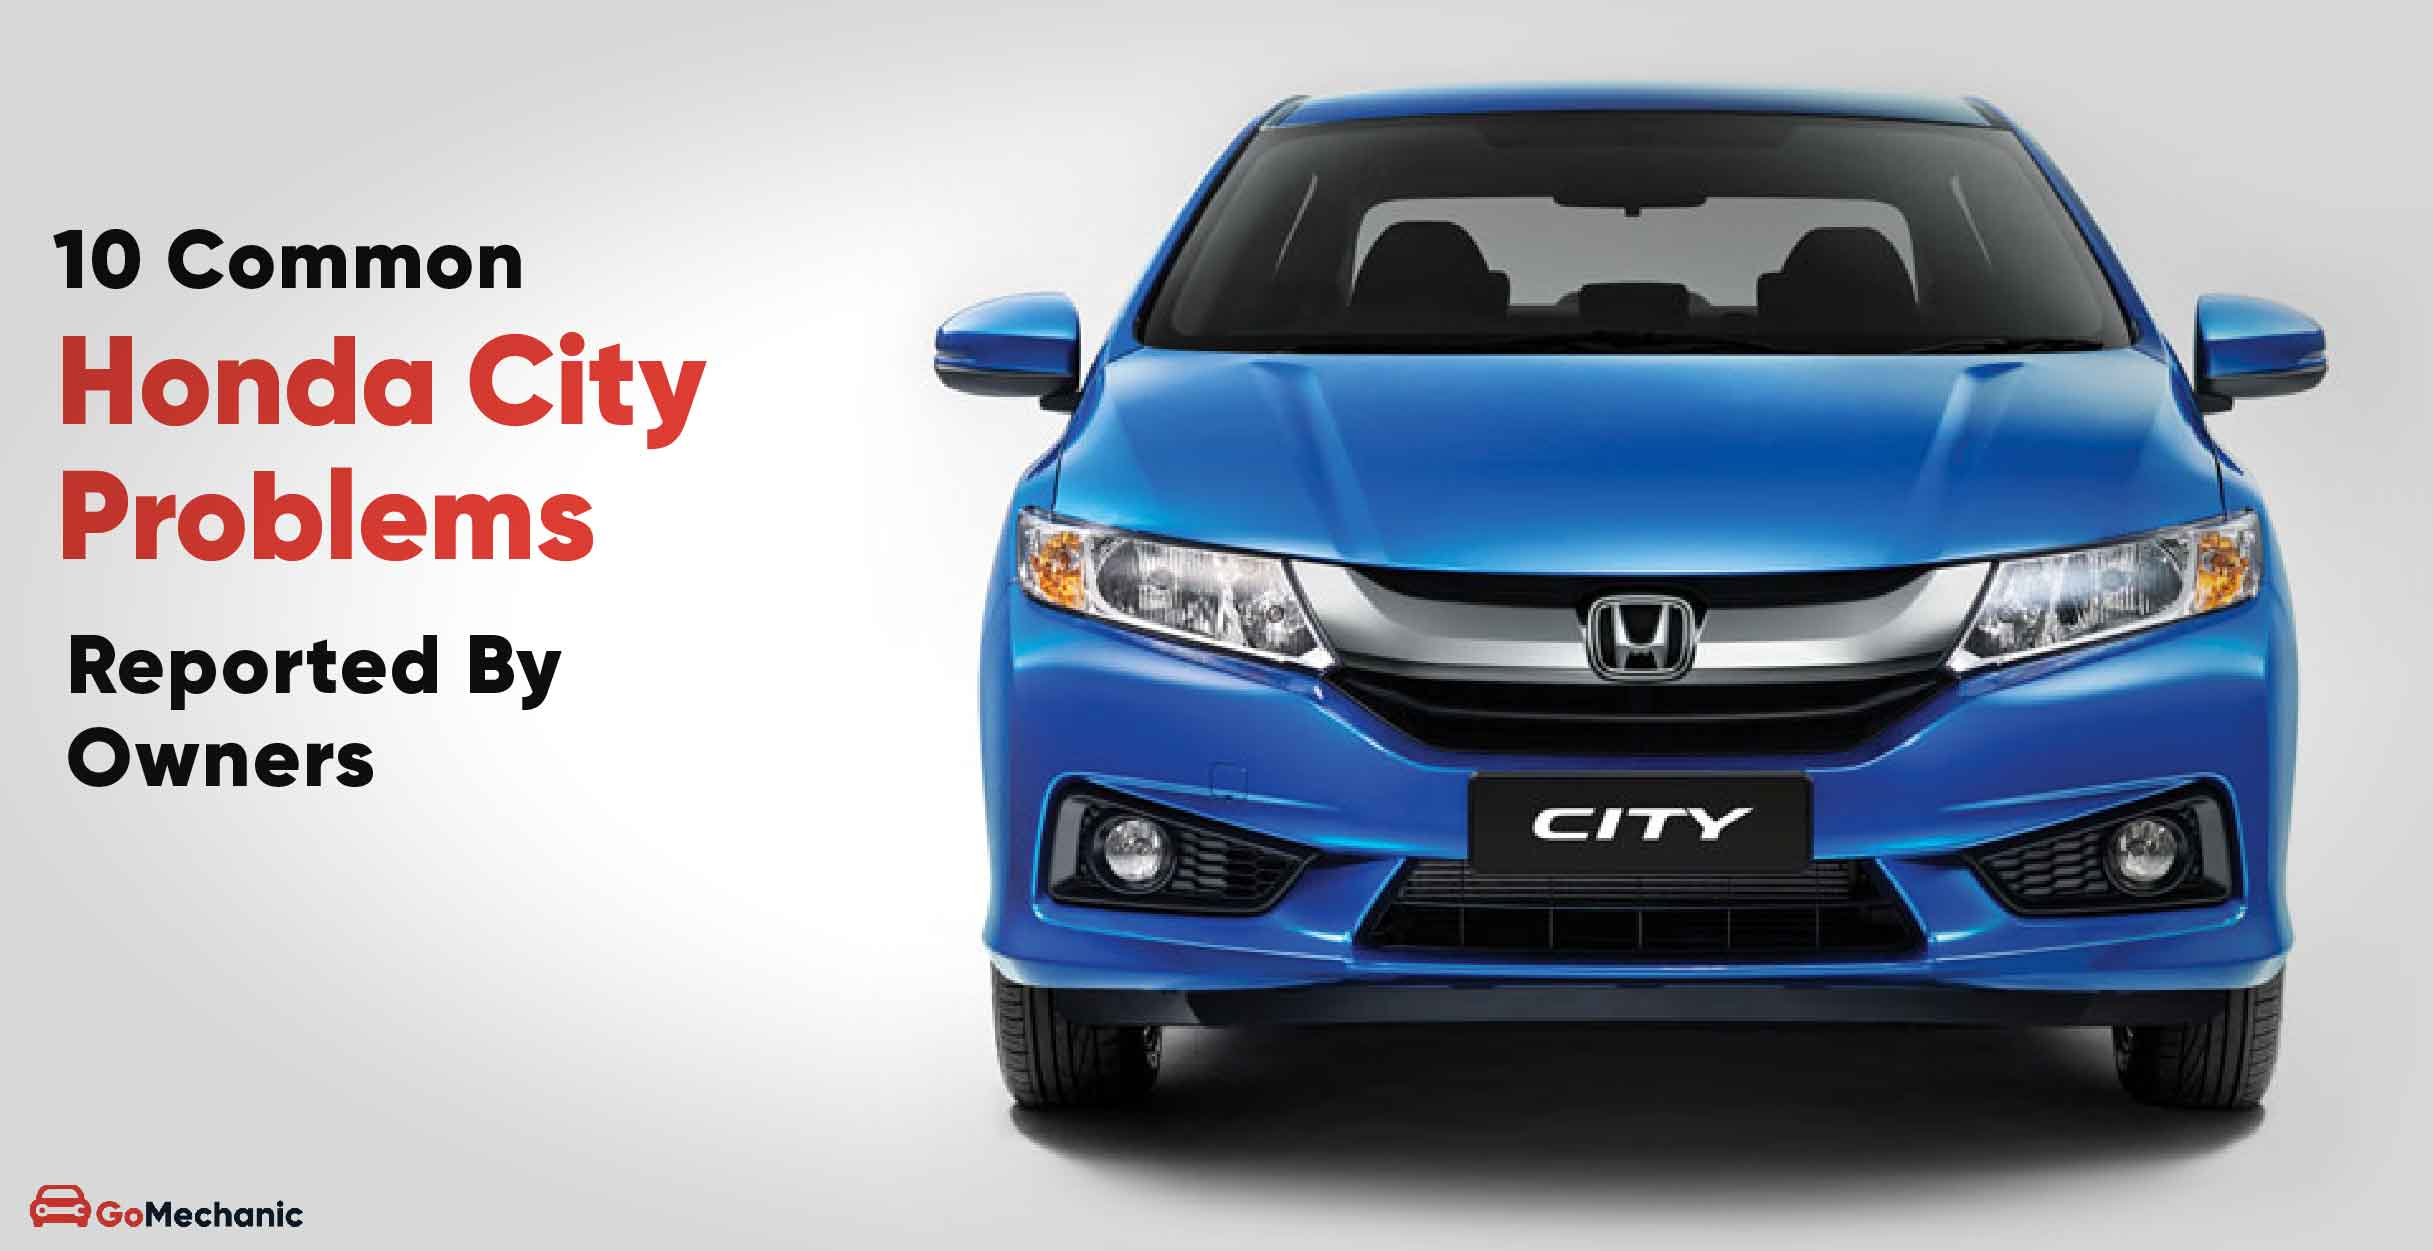 10 Most Common Honda City Problems Reported By Owners